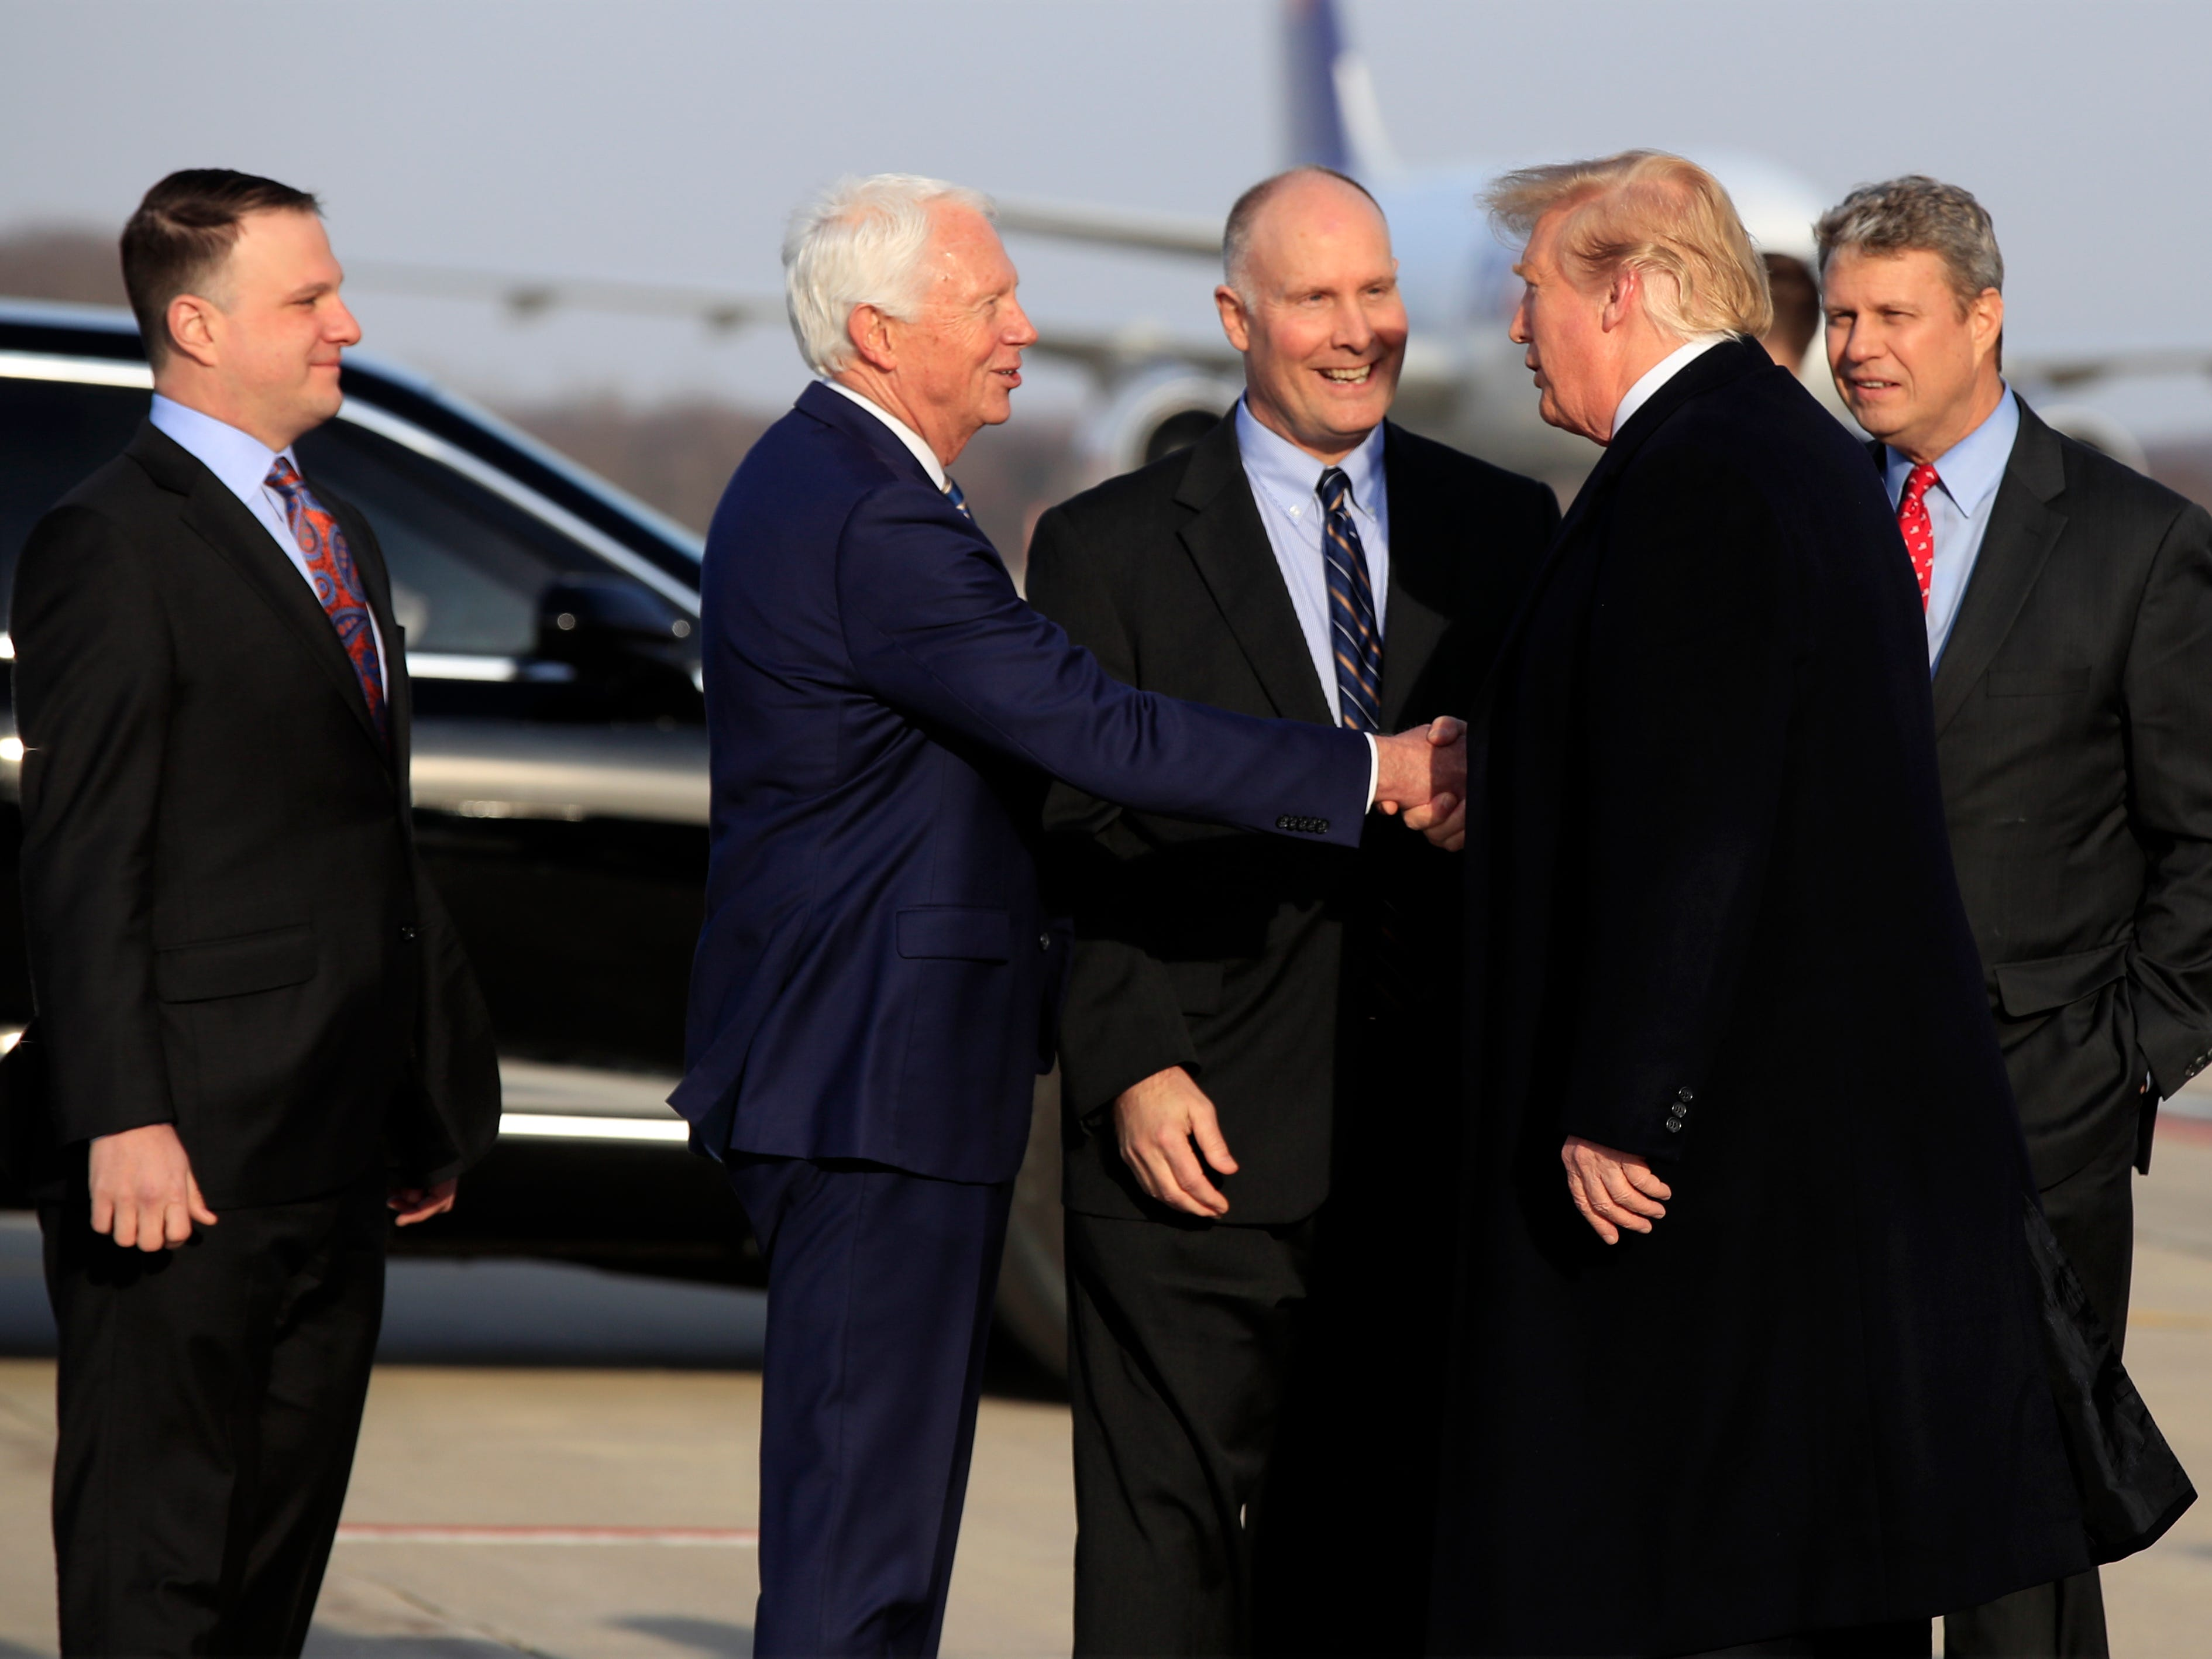 President Trump arrives at Gerald R. Ford International Airport in Grand Rapids, Mich., to attend a campaign rally.